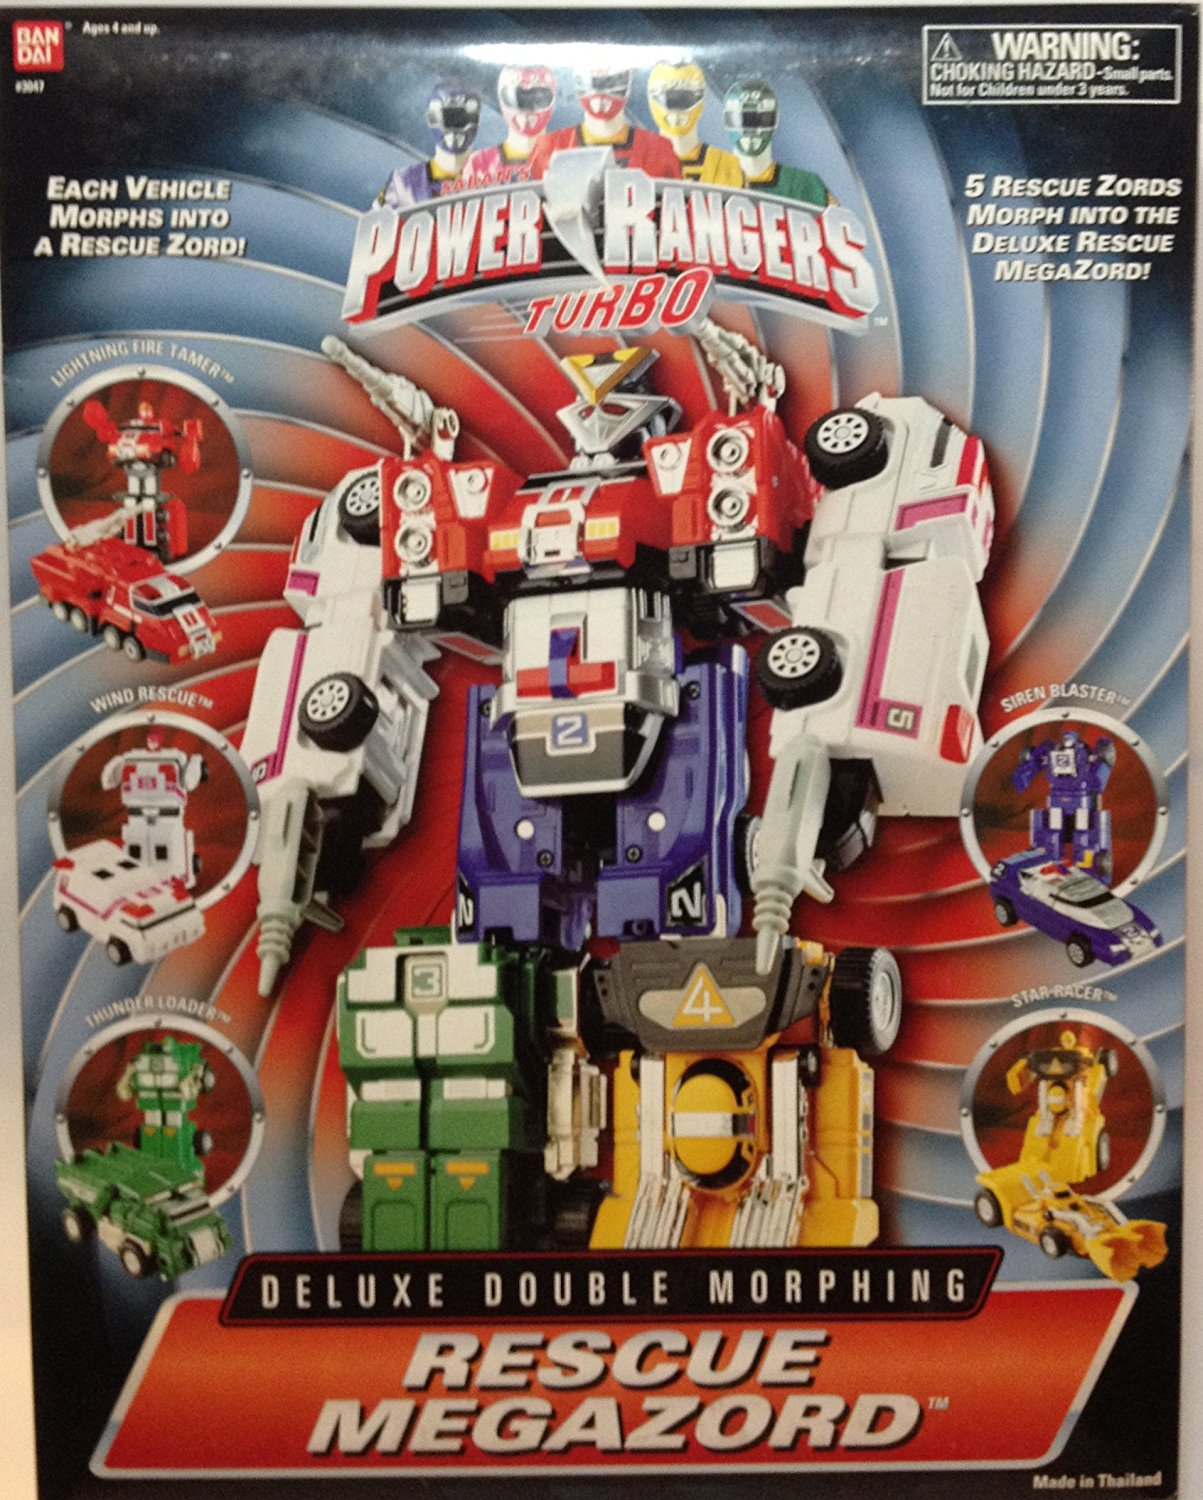 Power Rangers Deluxe Double Morphing Rescue Megazords Are